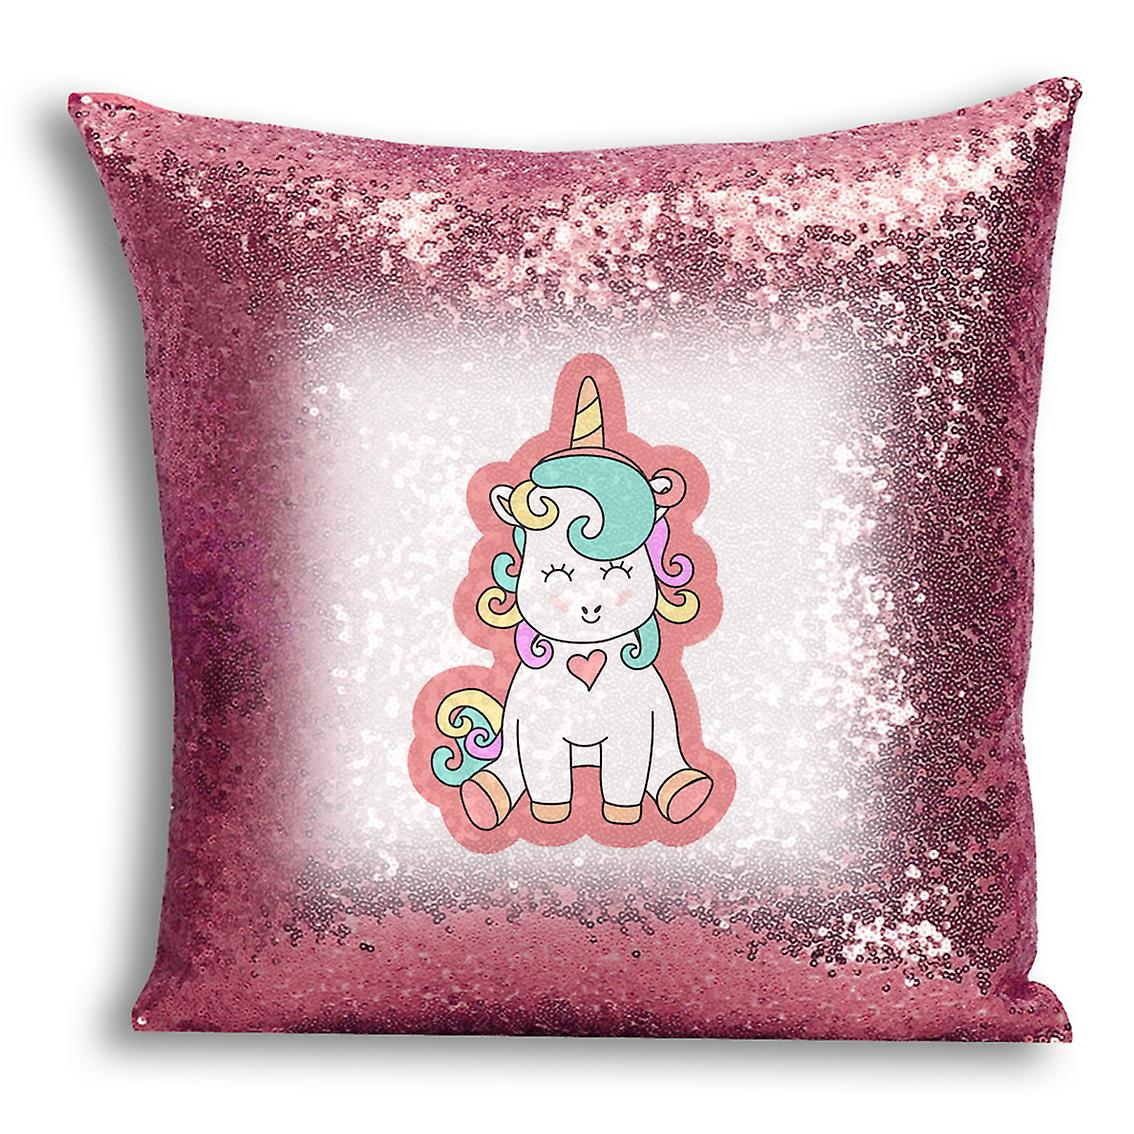 CushionPillow Cover Home I With Inserted For Gold Sequin Decor Rose 19 Printed Design tronixsUnicorn 5q43jLAR